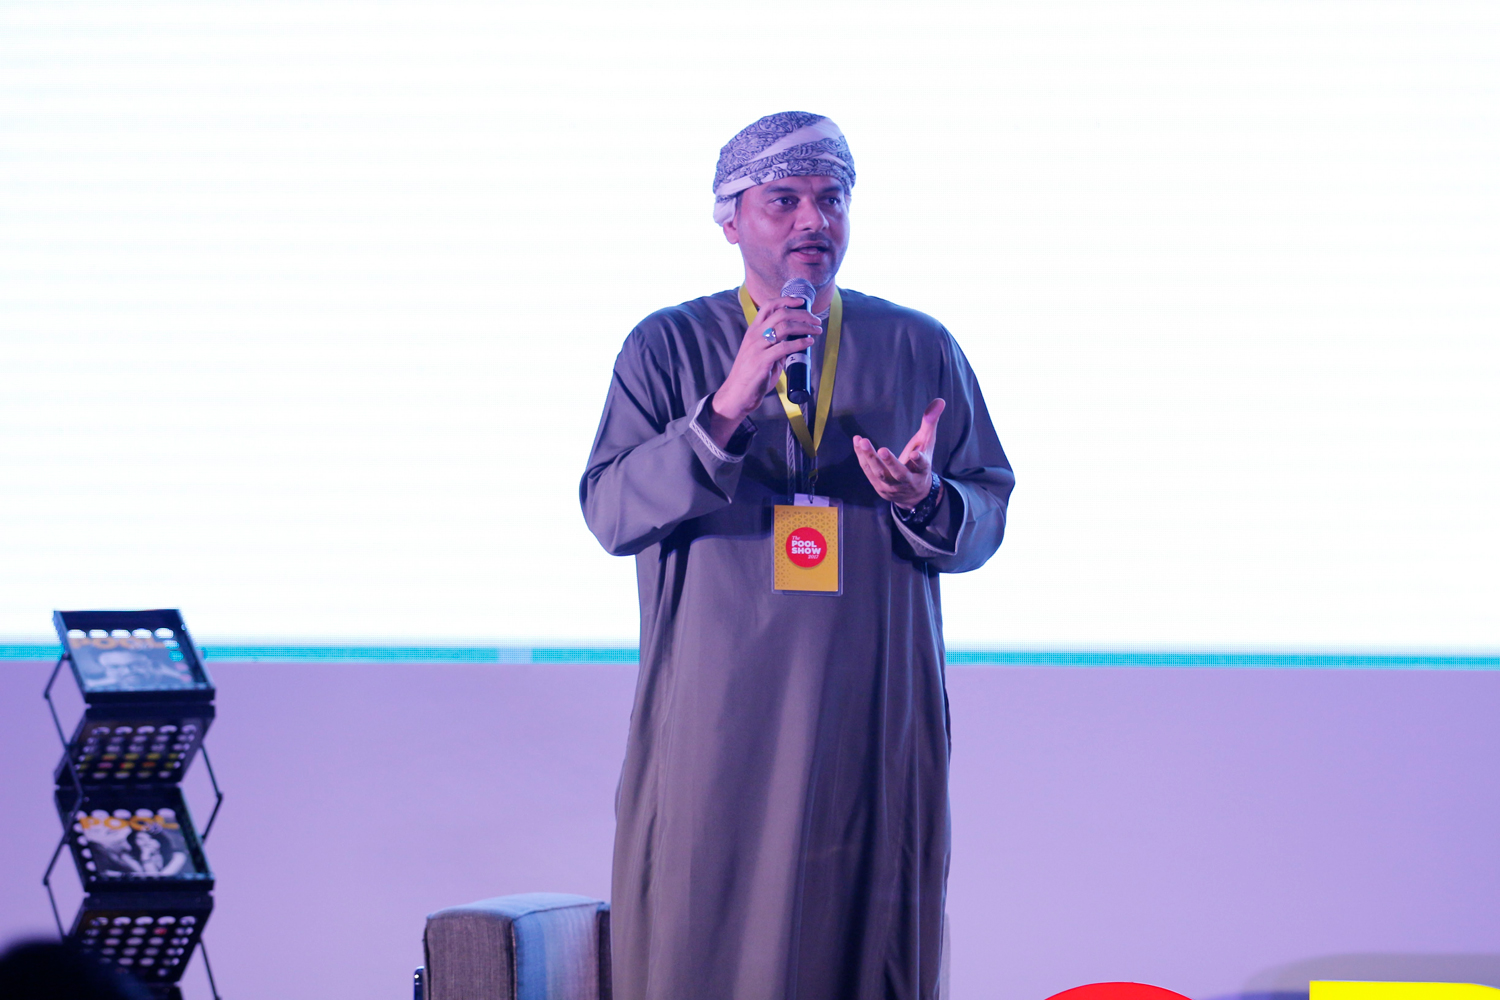 Hussain Al Lawati, of The Creative Soul Group Oman, introduces the culture and design aesthetic of Oman.